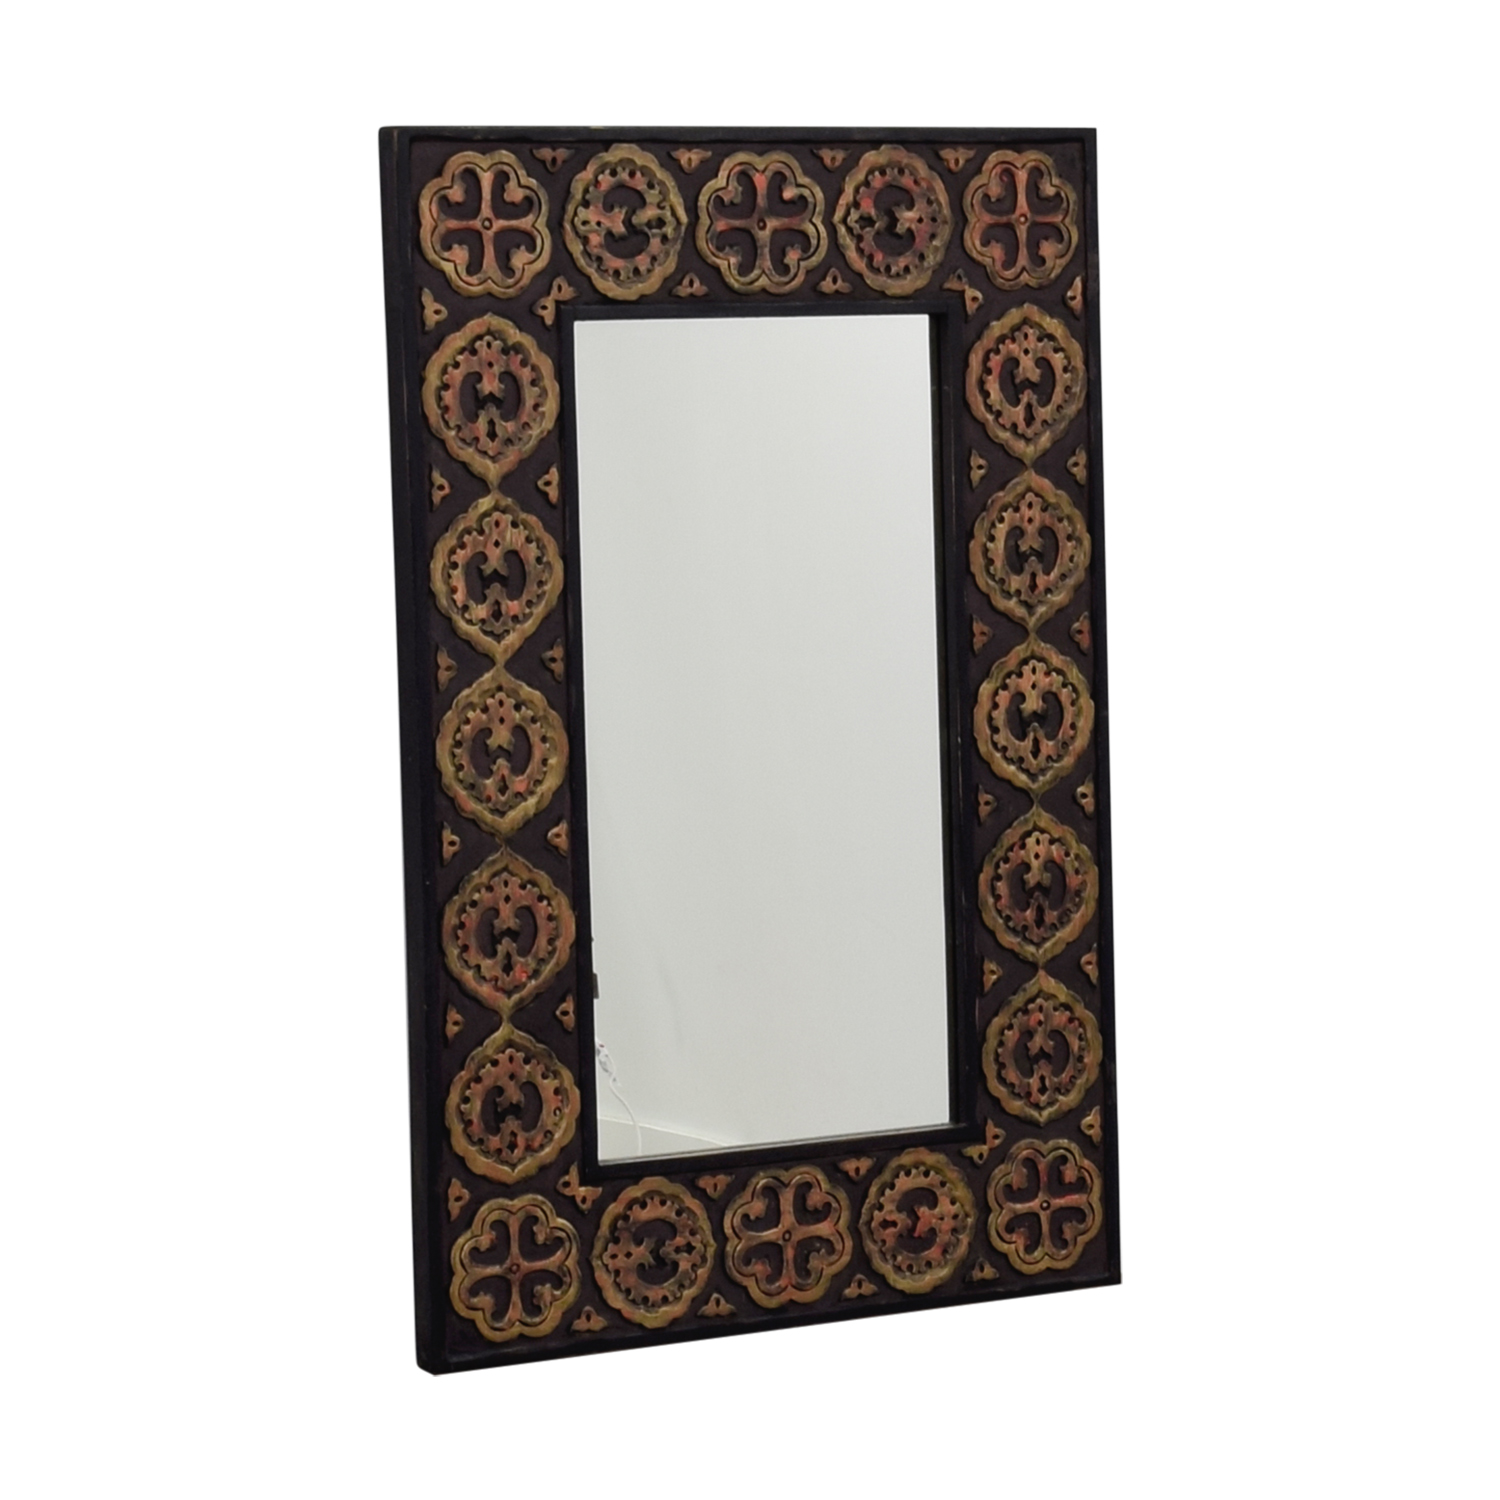 Pier 1 Imports Pier One Imports Mirror With Rustic Gold Emblemed Frame Mahogany